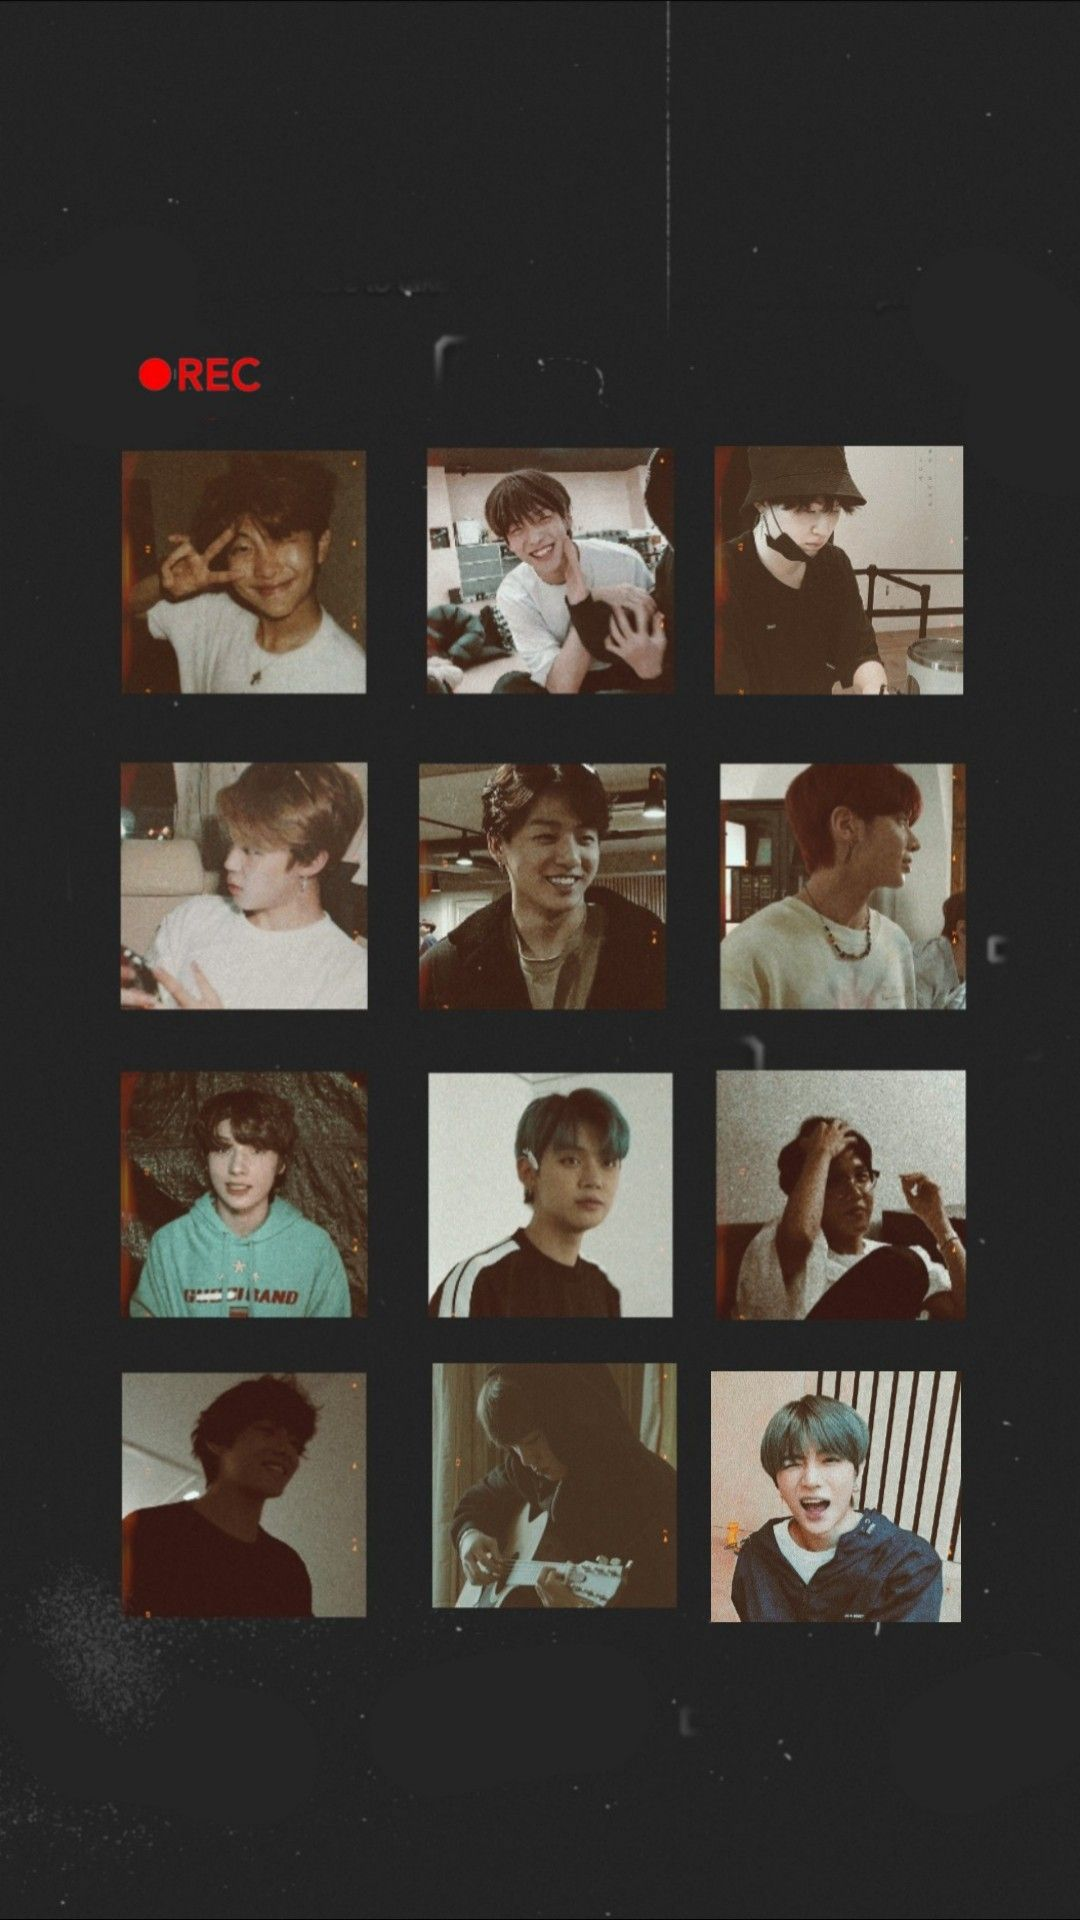 Txt And Bts Wallpaper Bts and txt wallpaper aesthetic